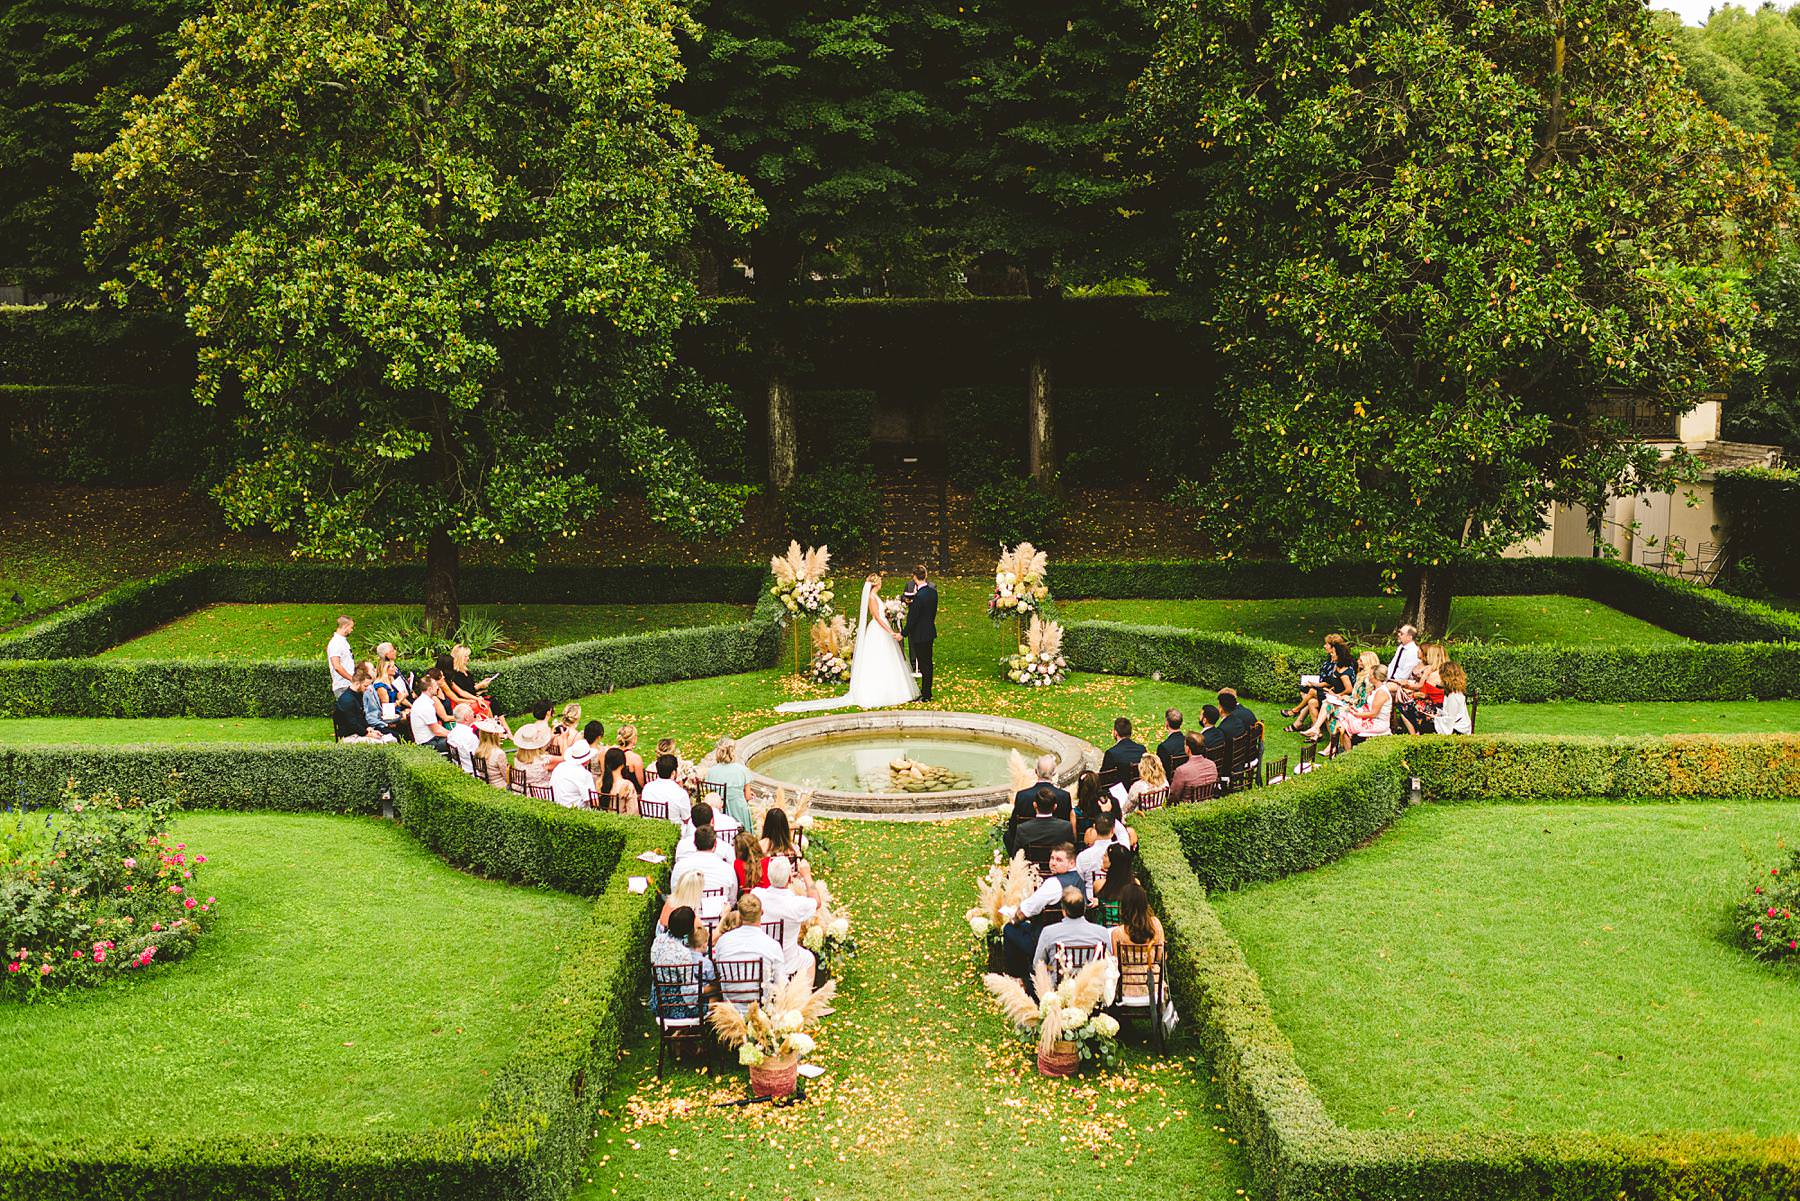 Classic and timeless wedding celebration in the elegant Italian garden at Villa La Vedetta, Florence. Luxury destination wedding in Florence